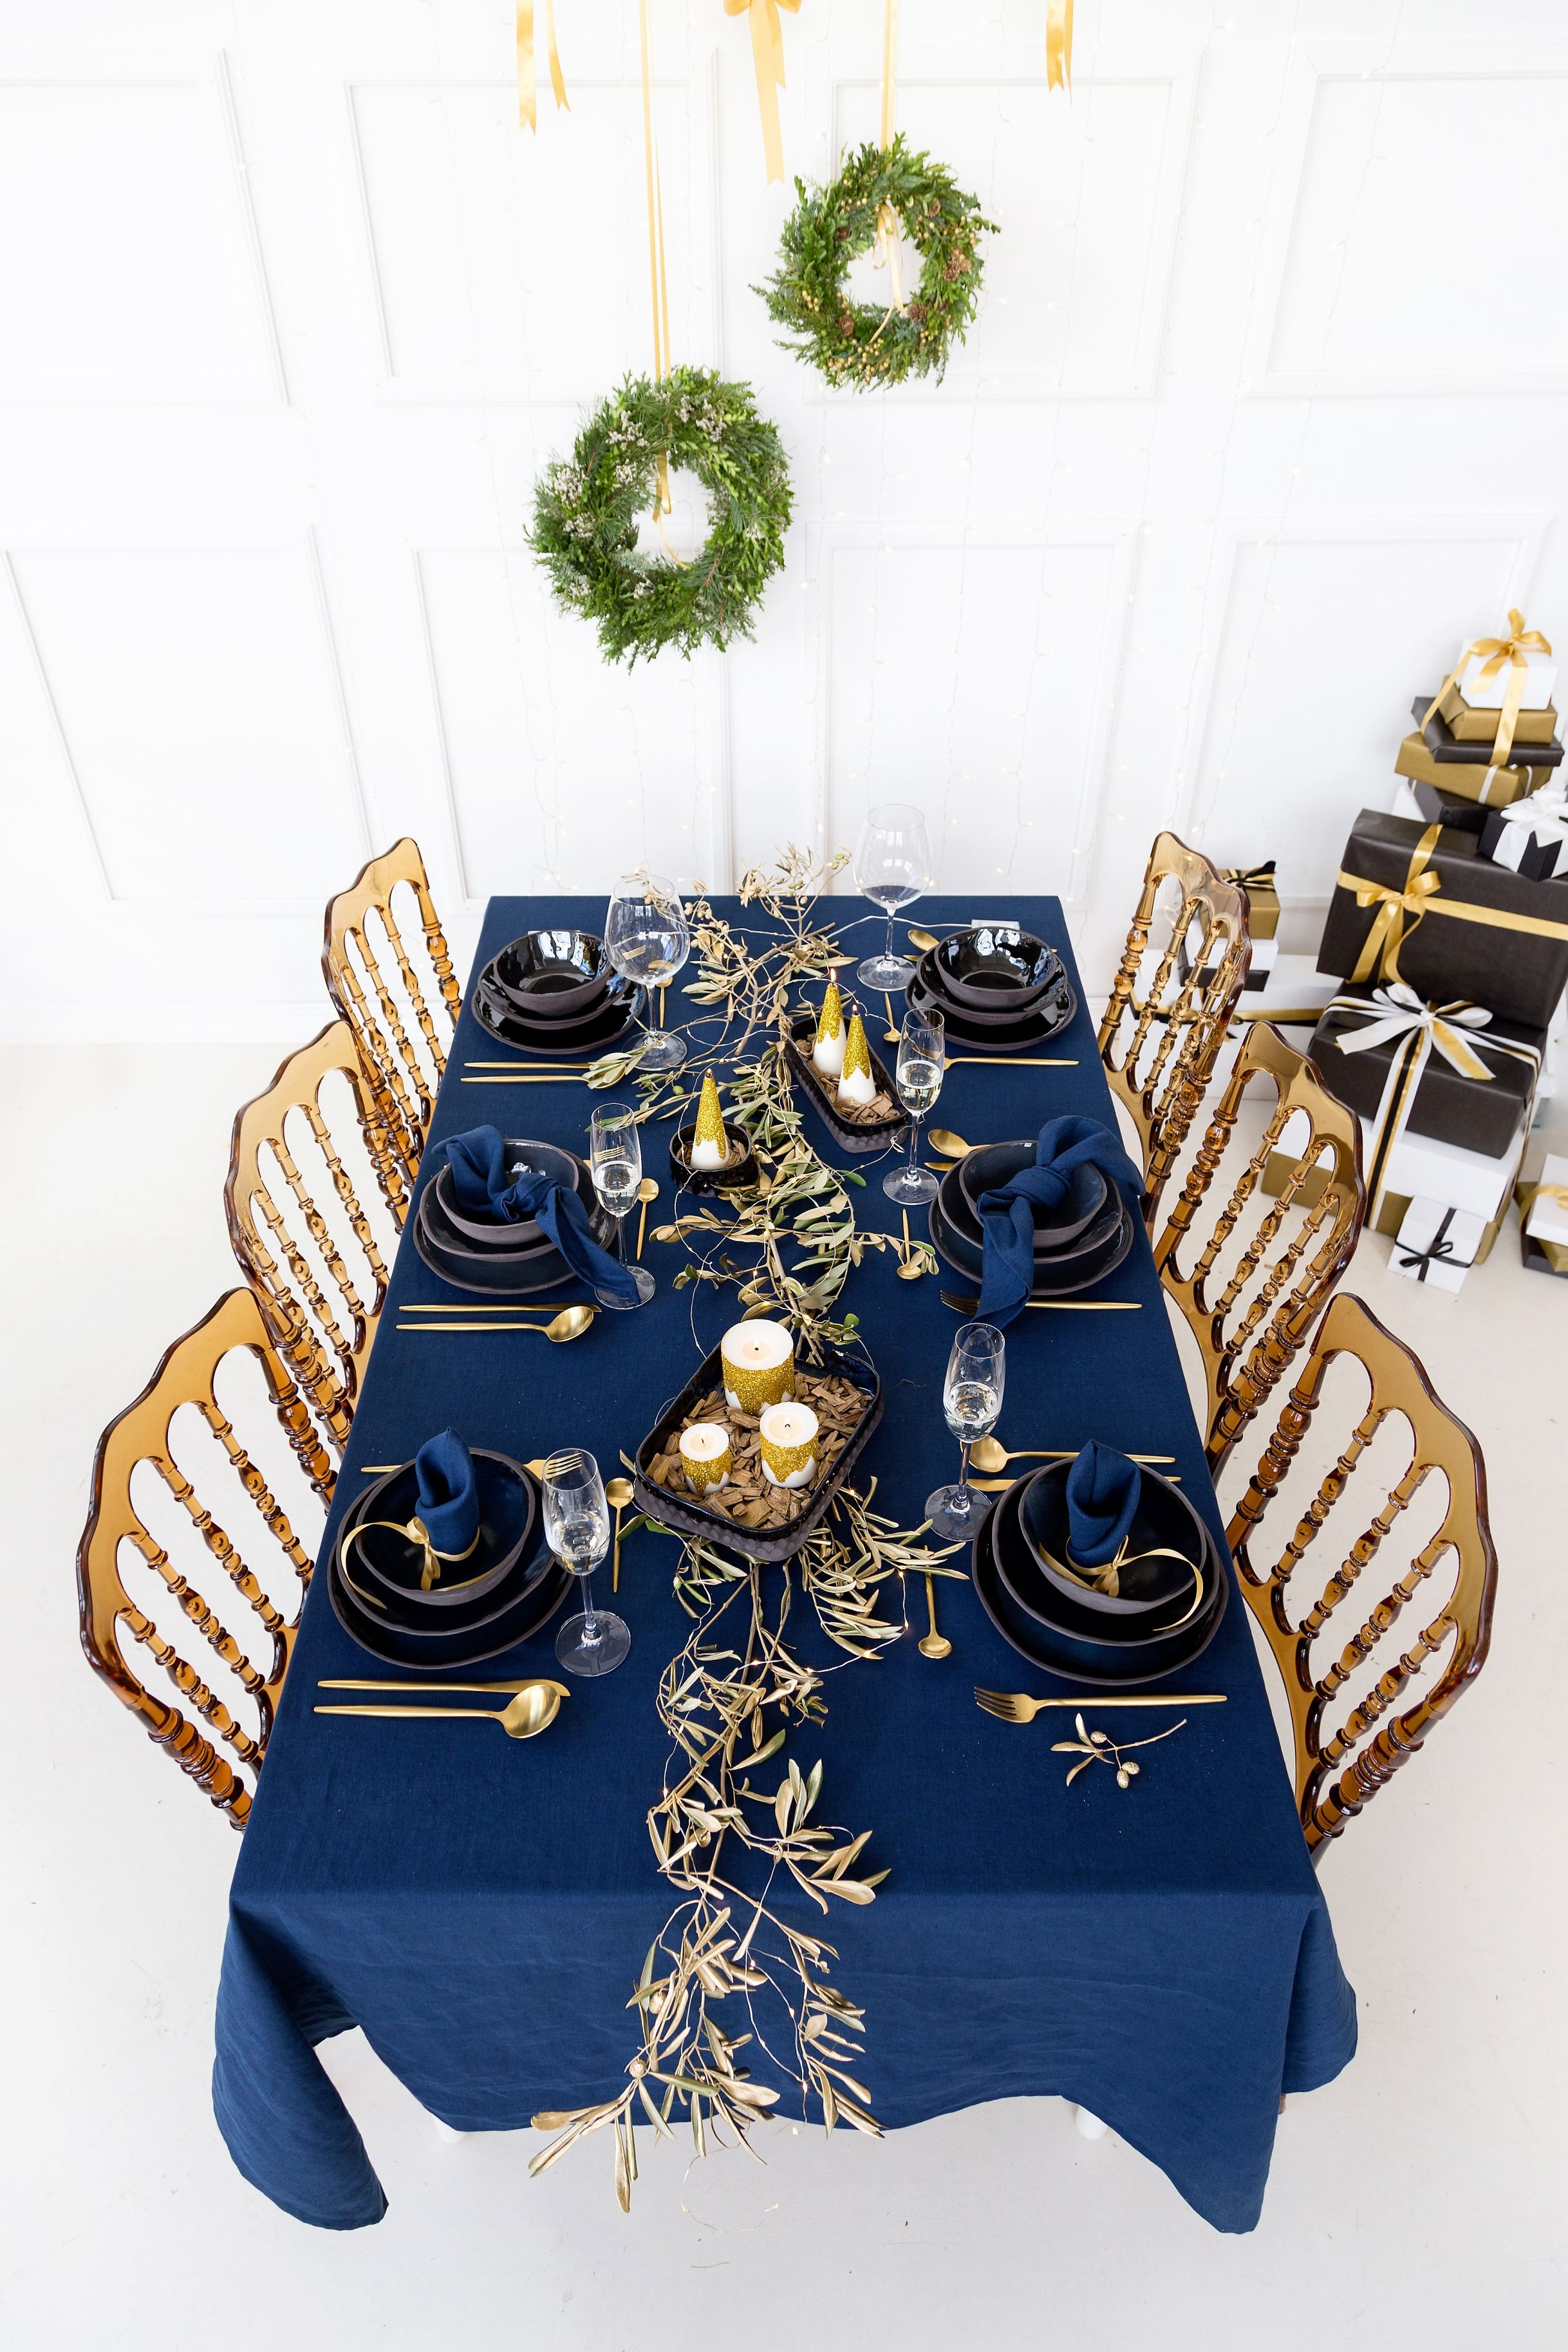 Navy Blue Christmas Tables Cape With Gold Glitter Soy Wax Candles Christmas Christ Gold Christmas Decorations Dinner Party Table Christmas Table Decorations